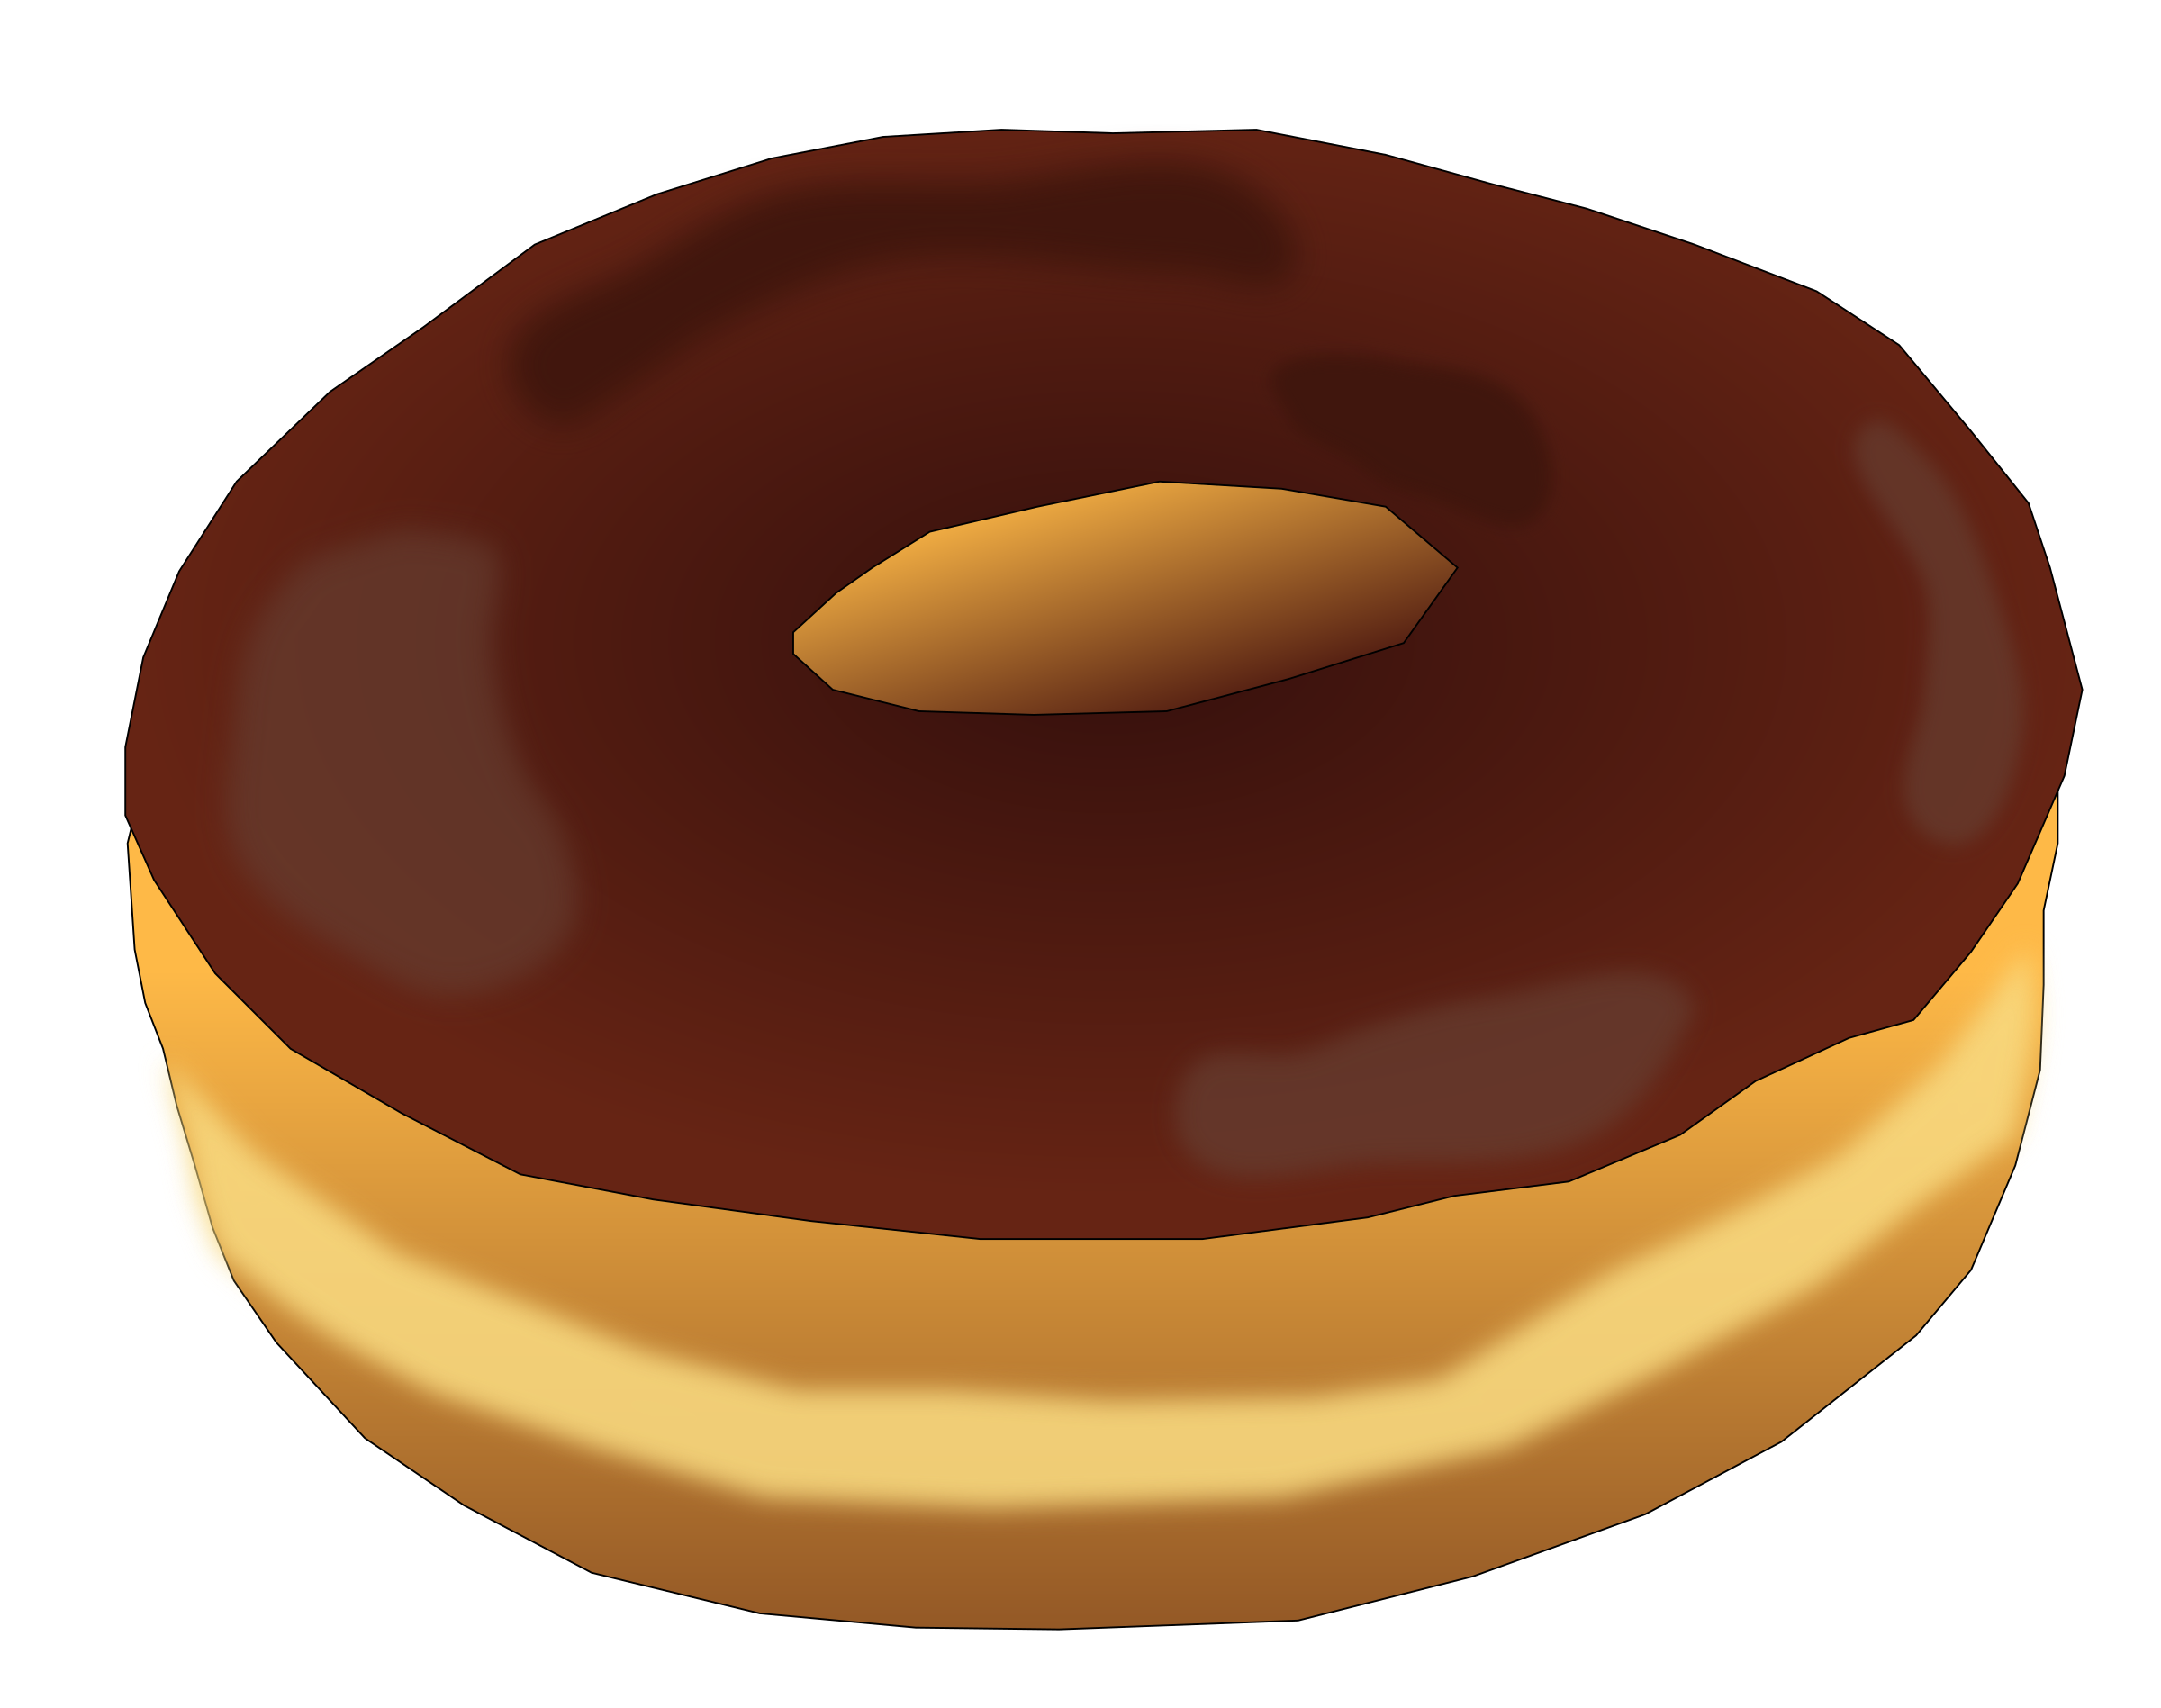 Plain big image png. Donut clipart red